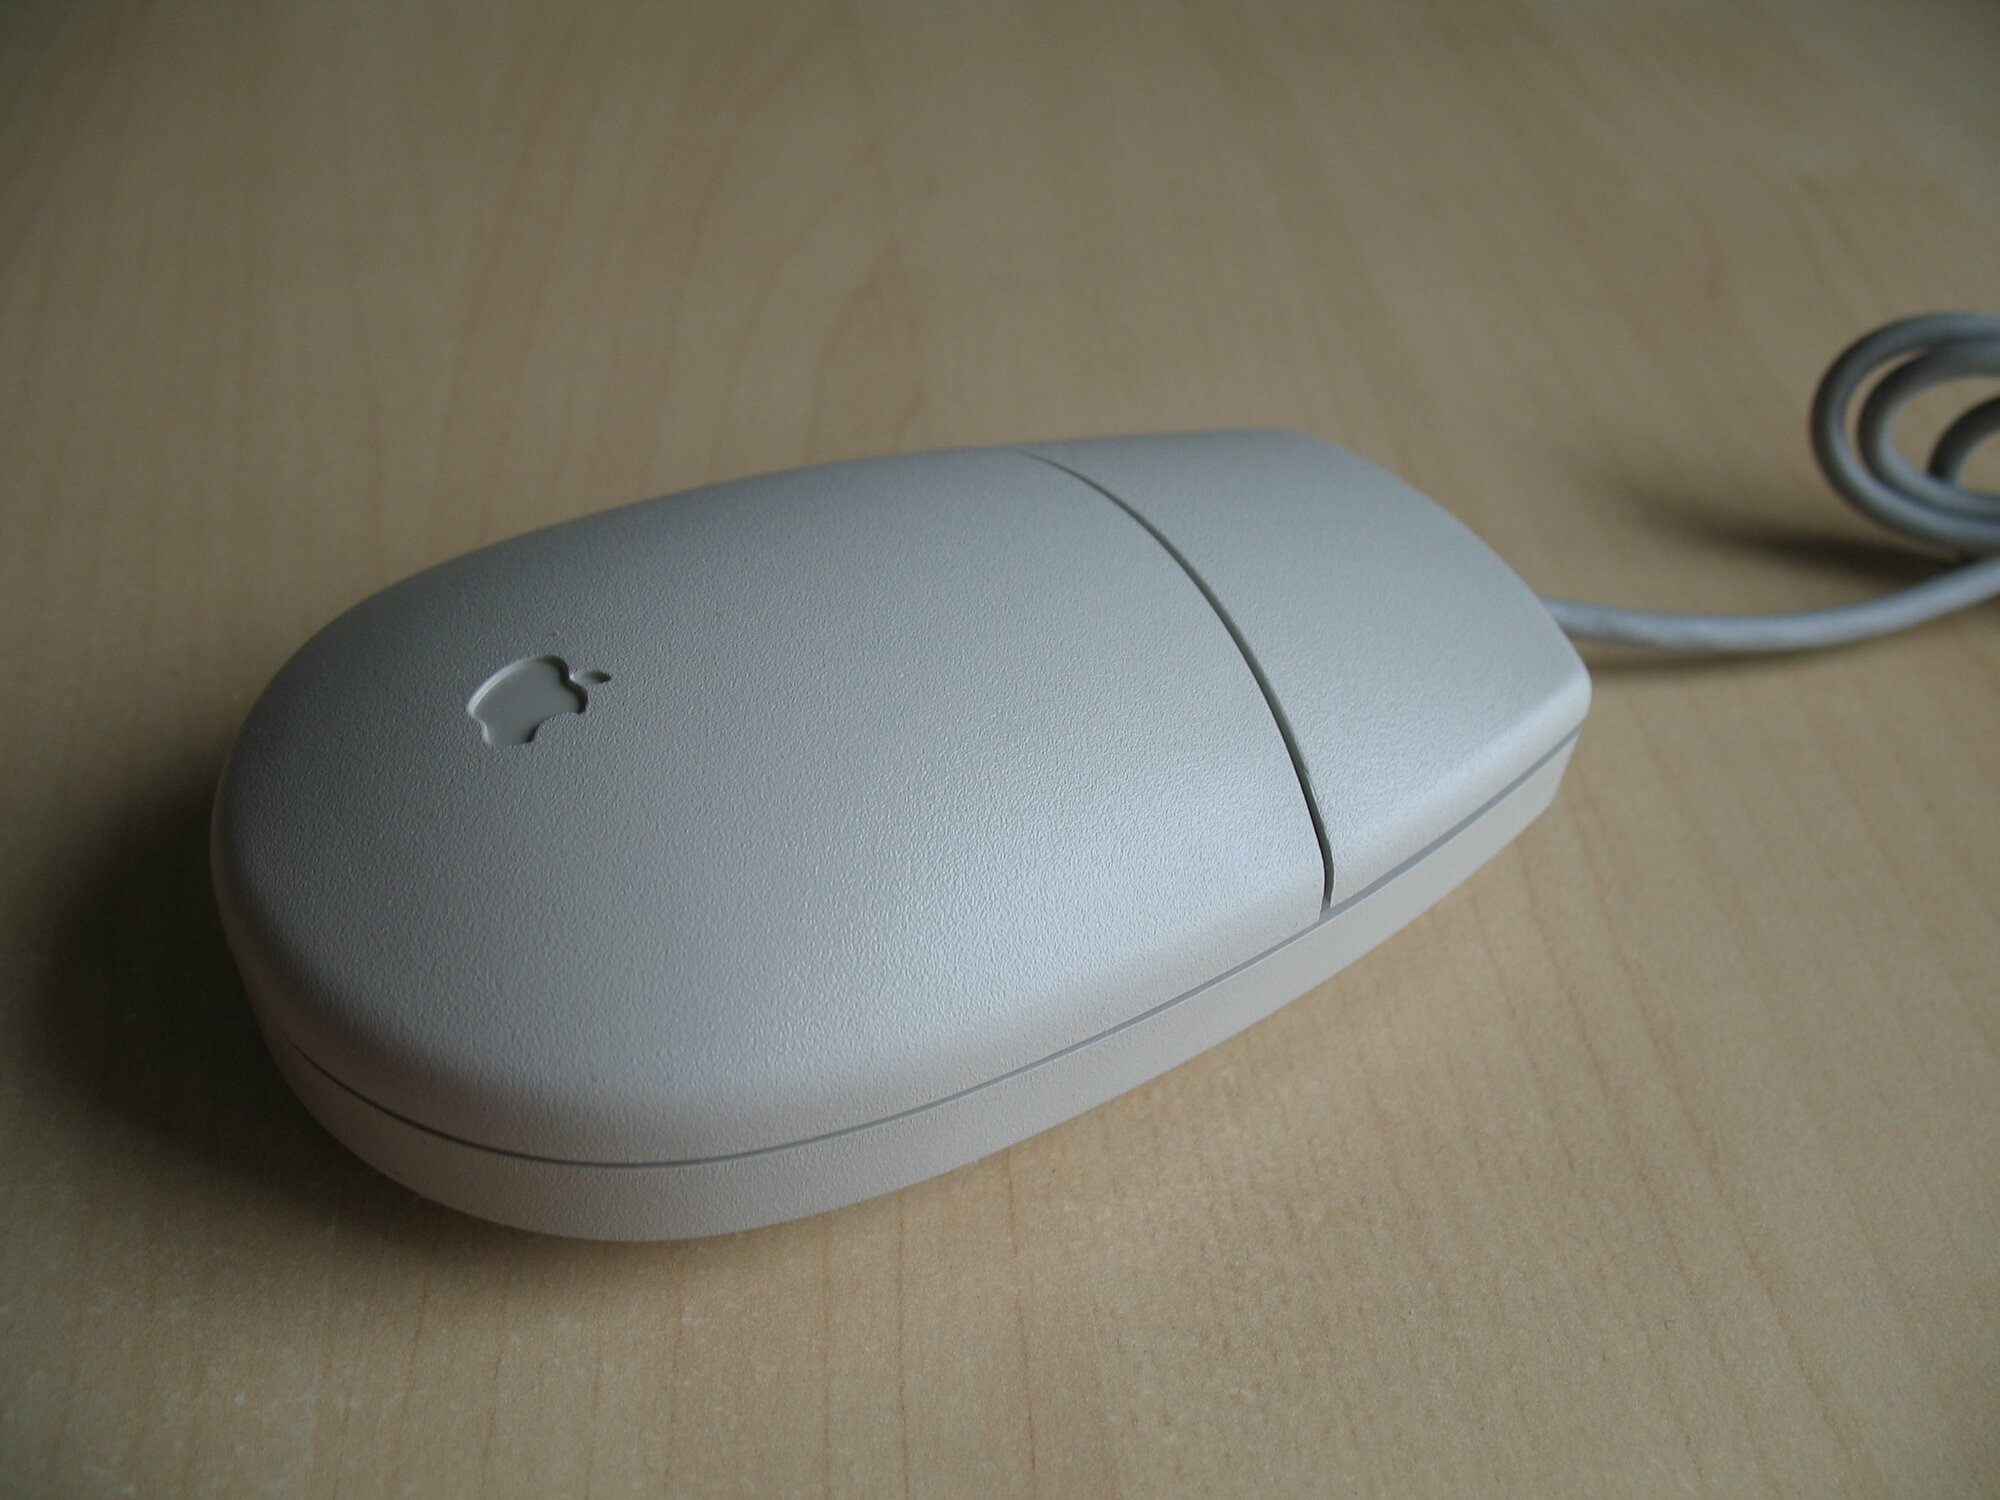 Apple-ADB-mouse.jpg